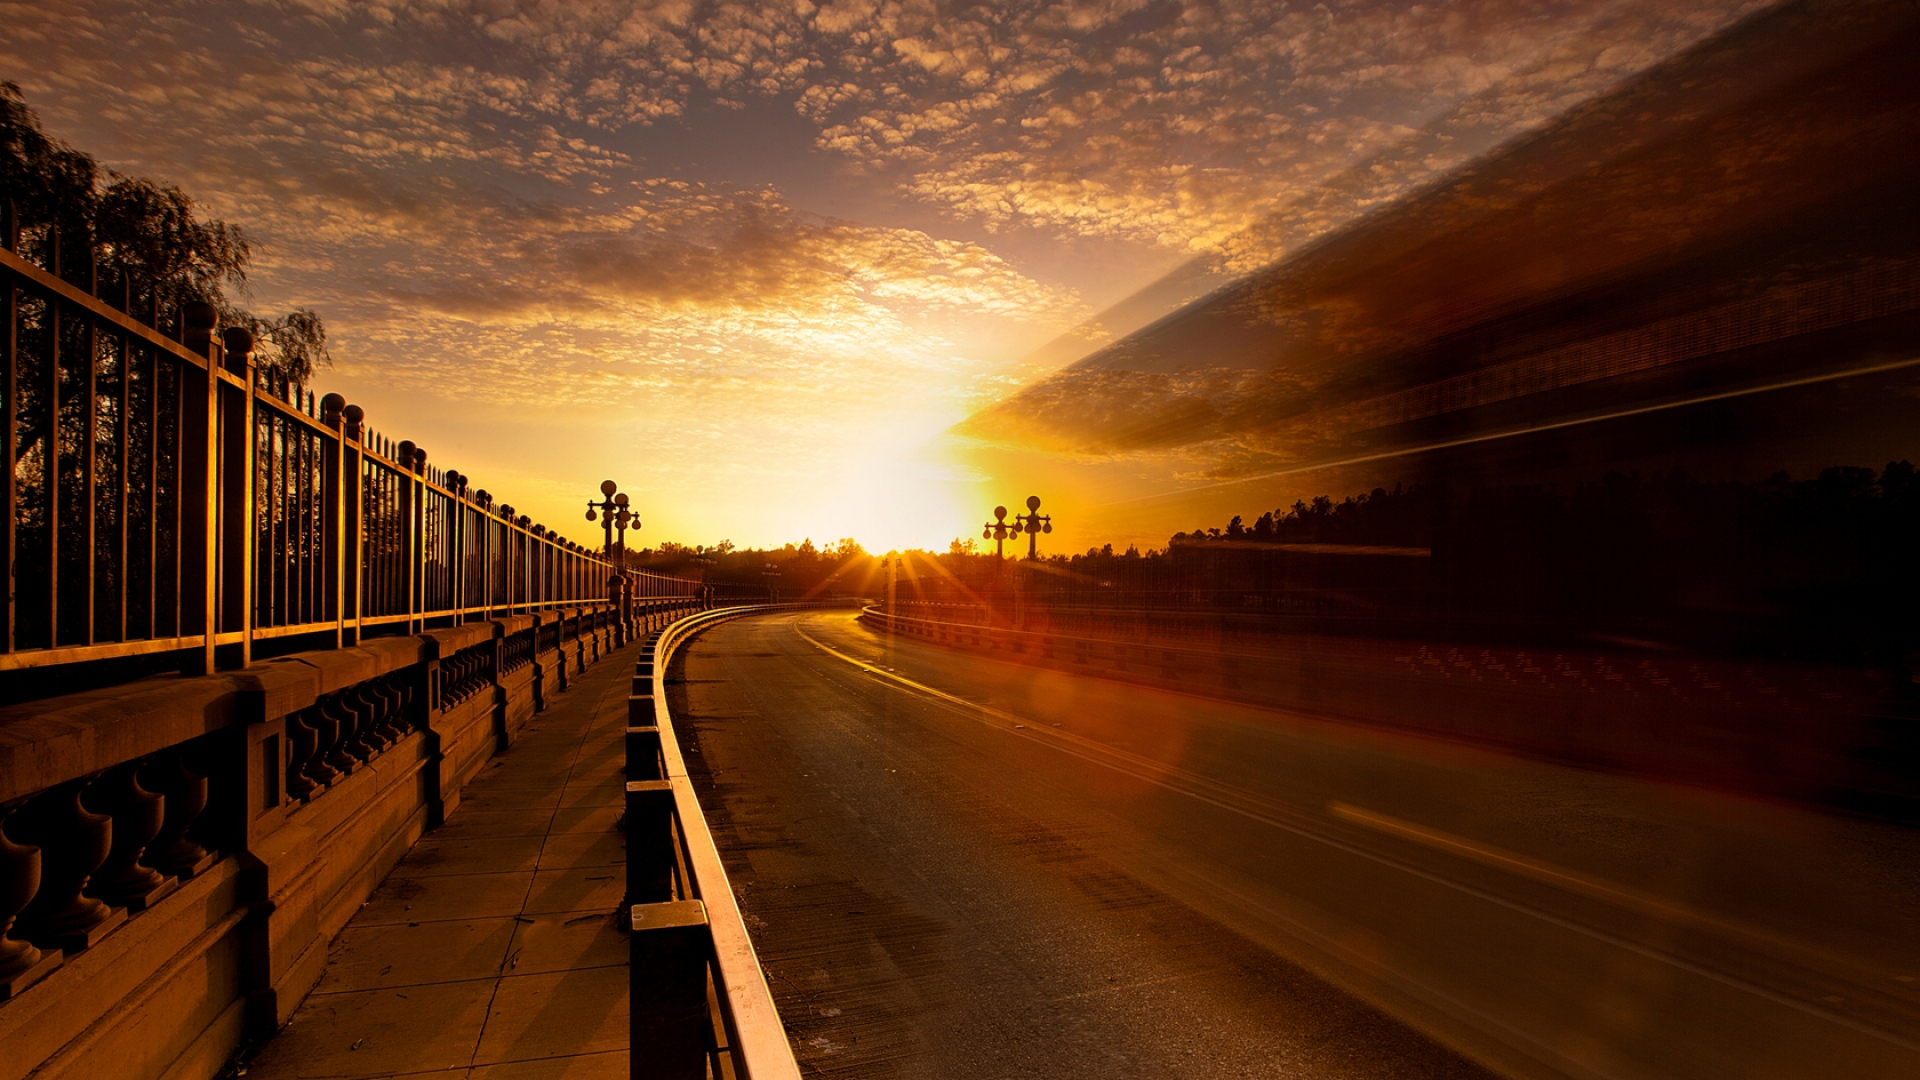 Get The Latest City Road Fence News Pictures And Videos Learn All About From Wallpapers4uorg Your Wallpaper Source